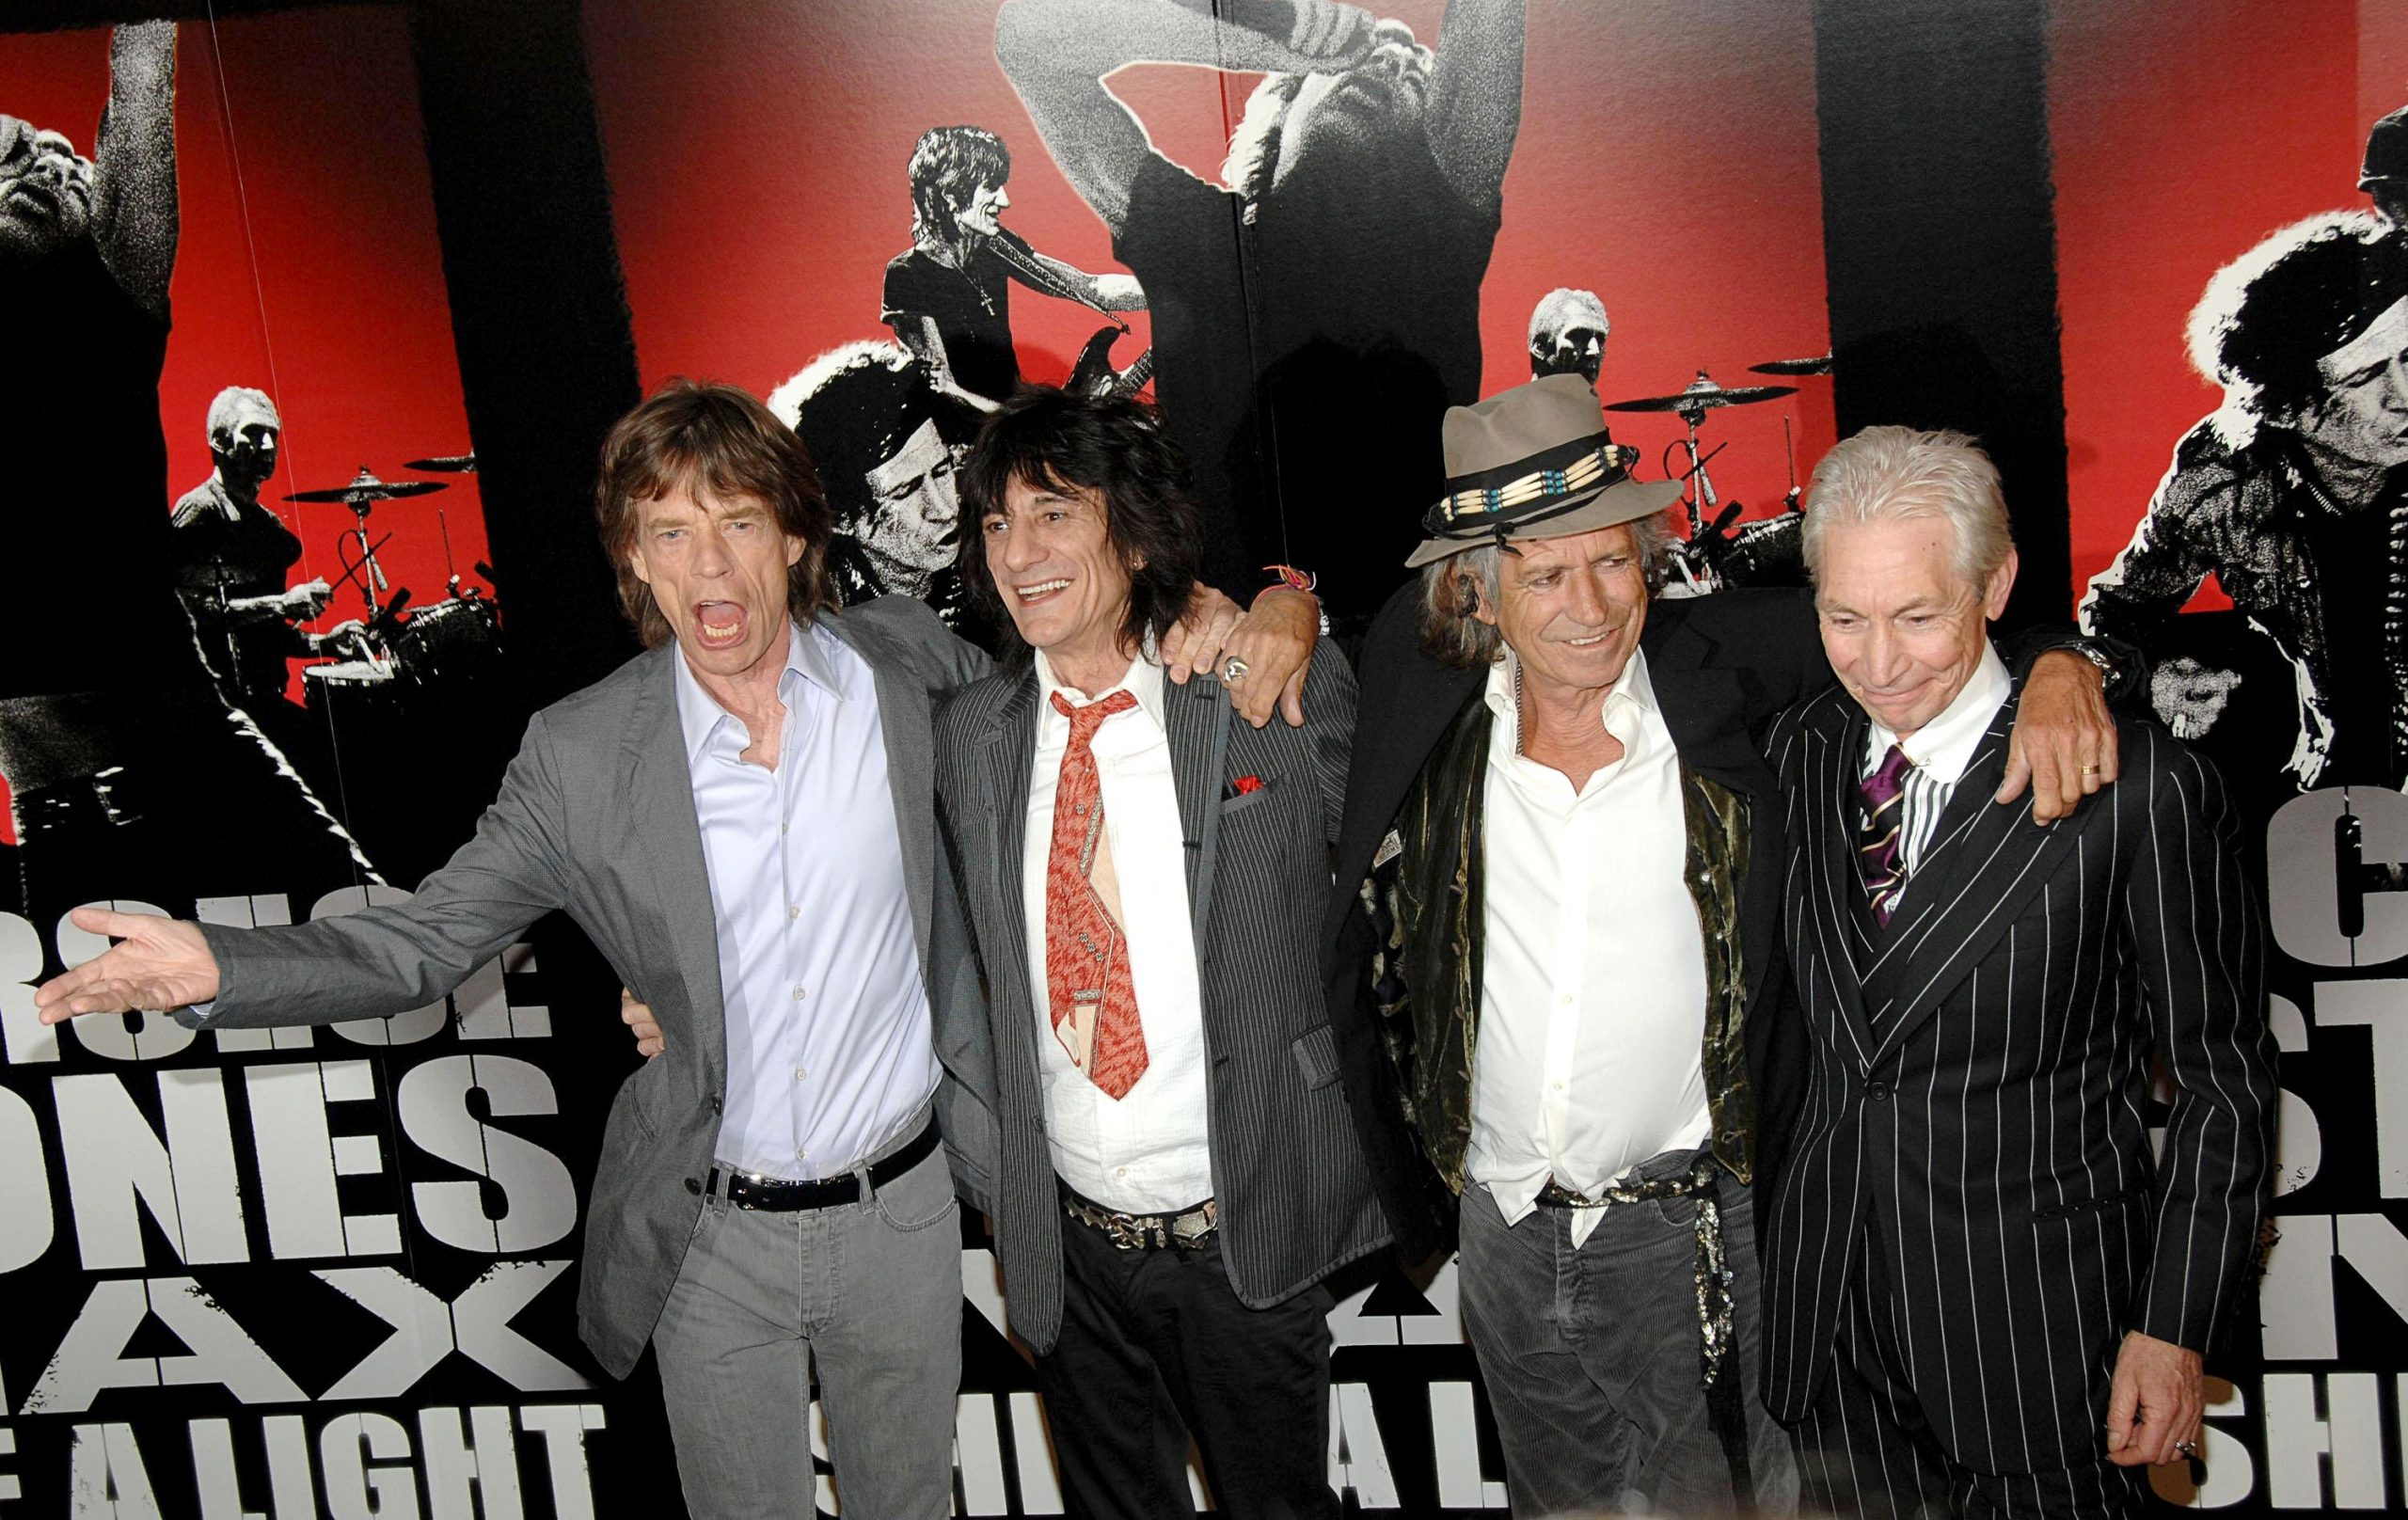 The rolling stones linking arms